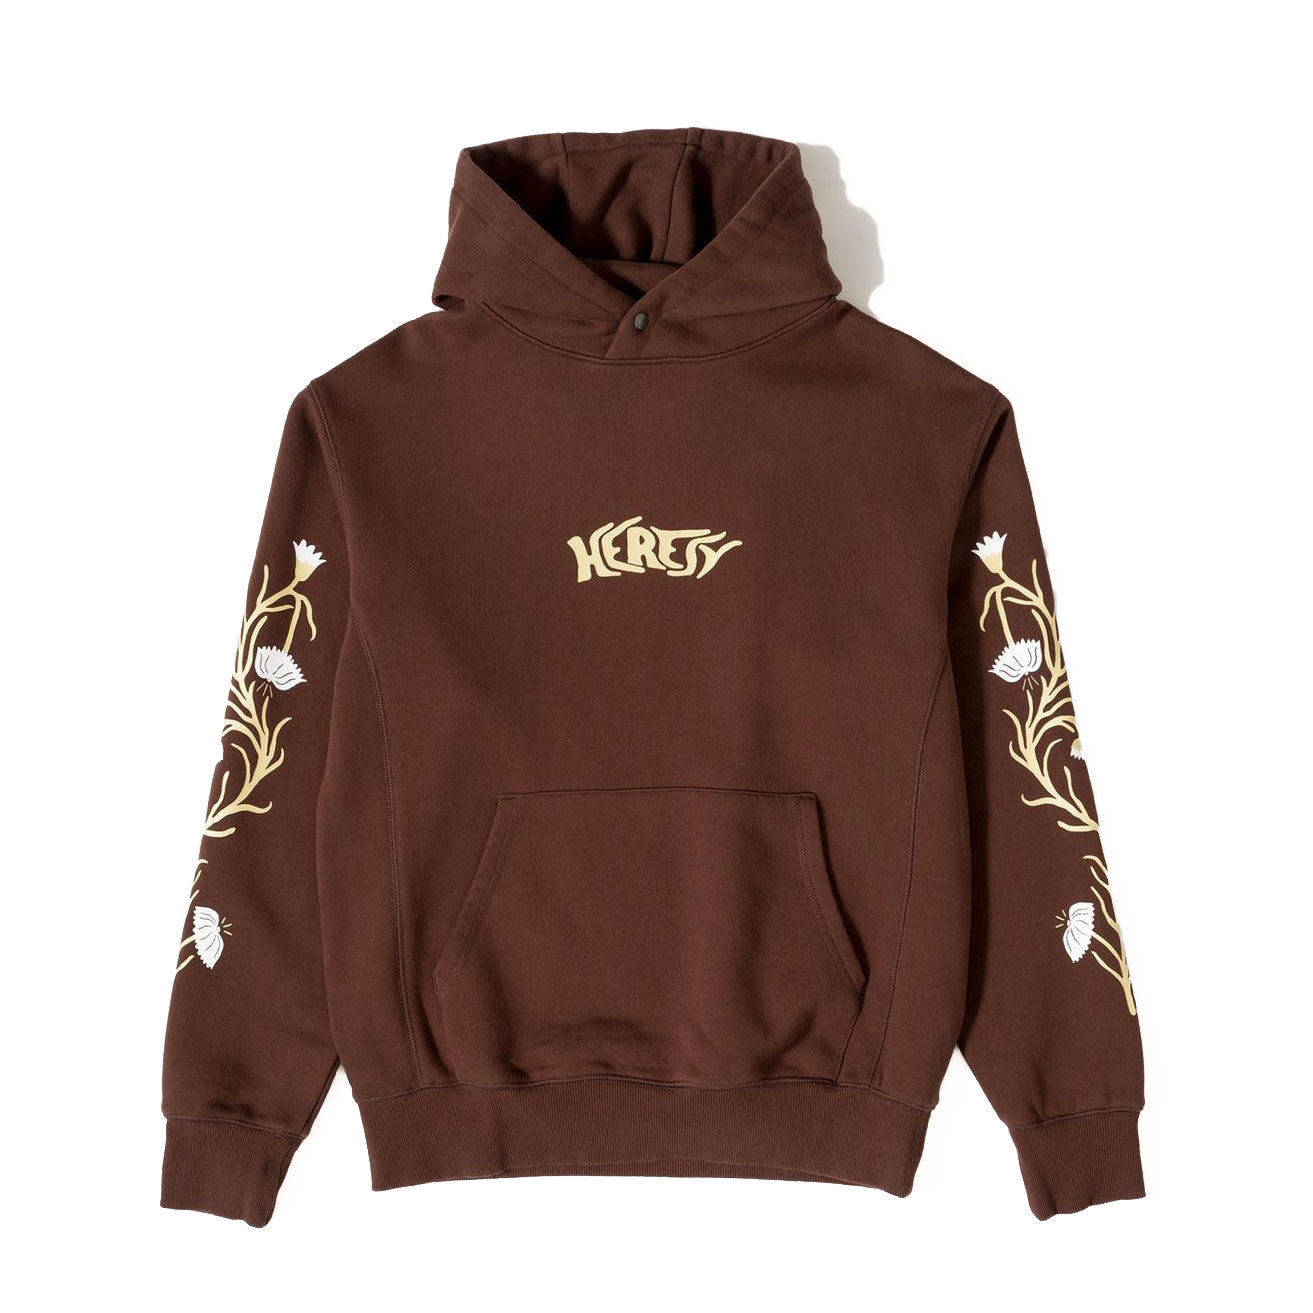 Heresy - Heresy - Planter Hood - Brown